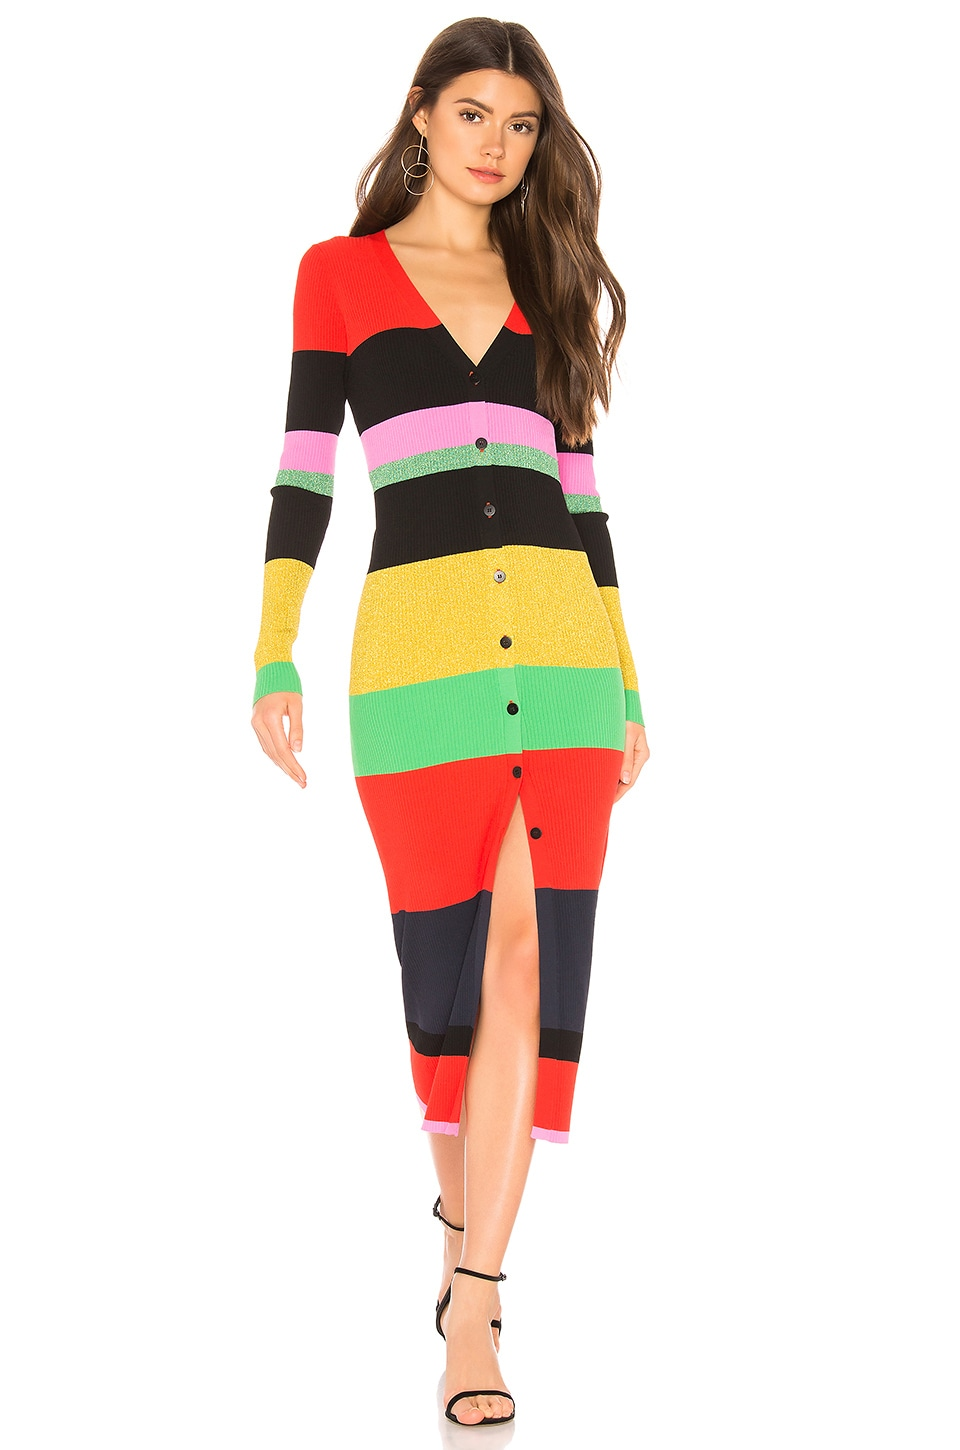 Diane von Furstenberg Maxi Sweater Dress in Candy Red Multi